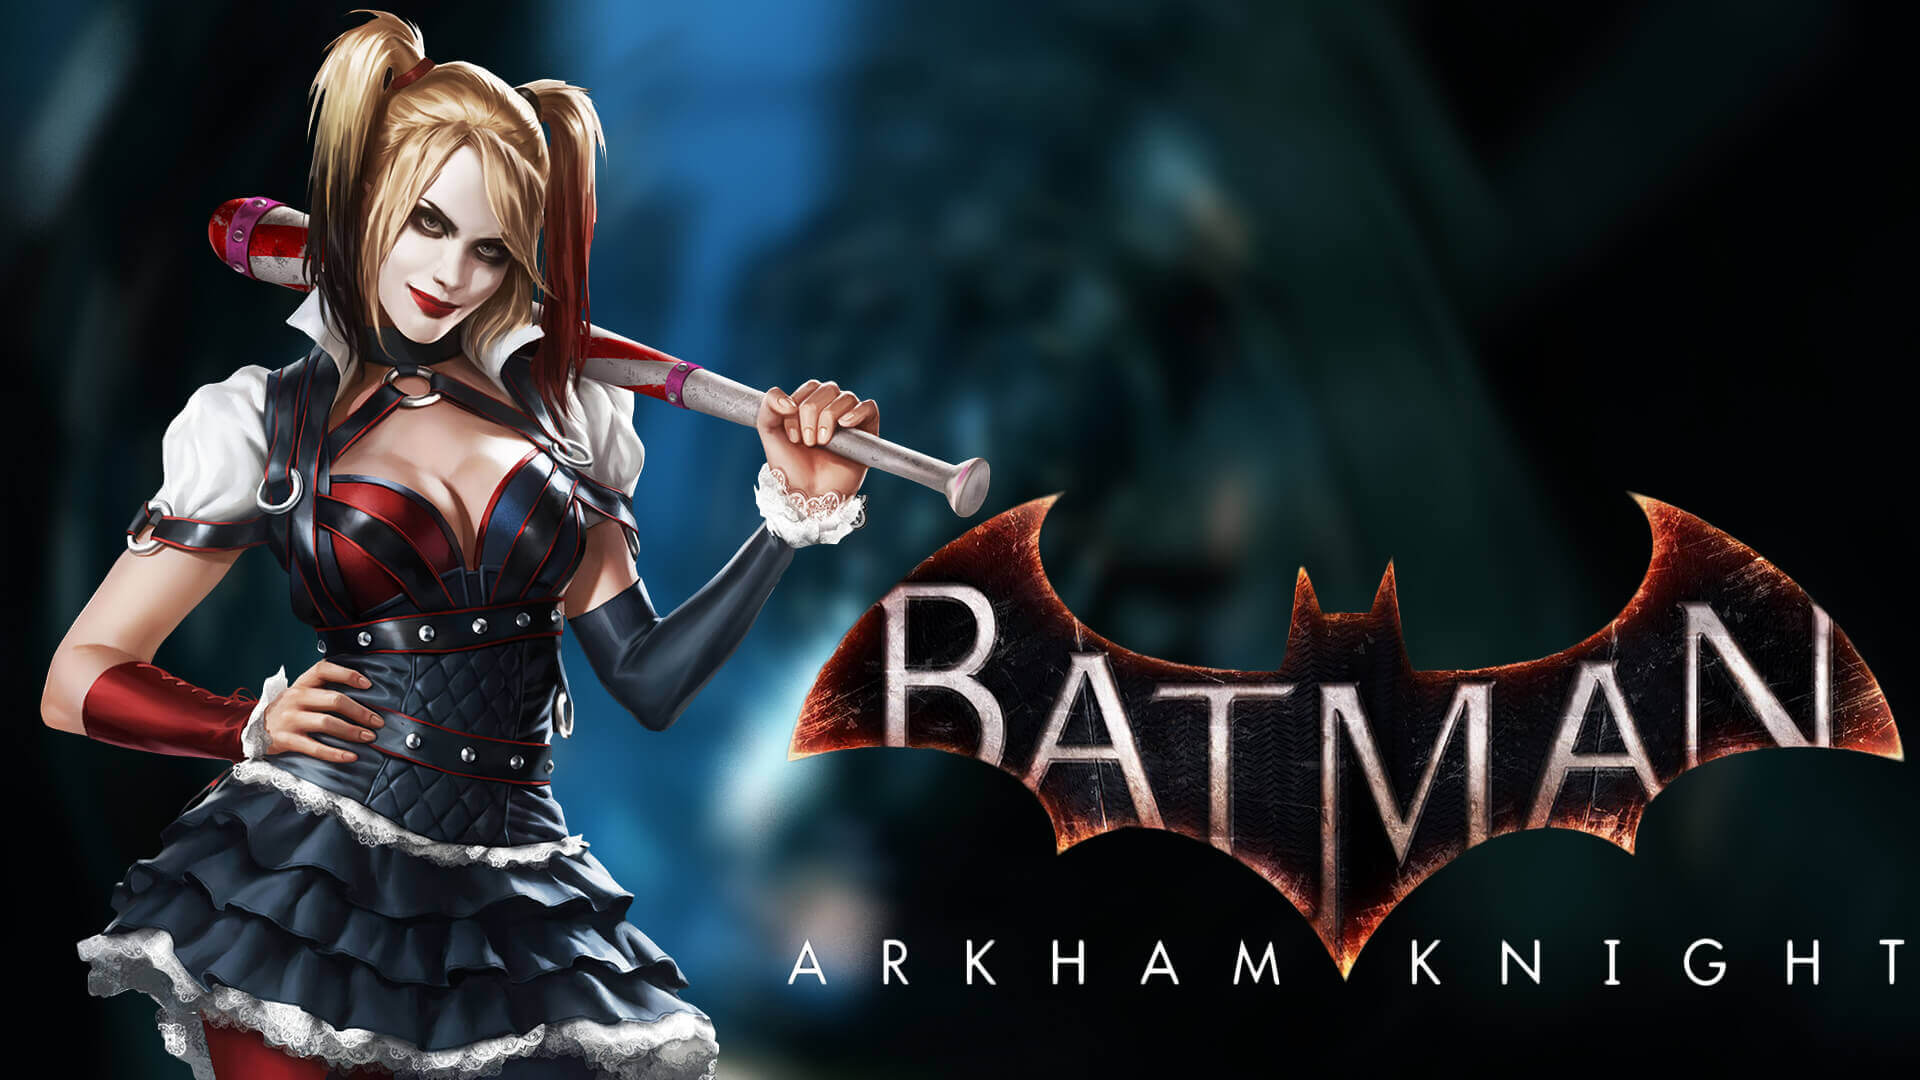 Harley Quinn Story DLC Is Coming To Arkham Knight